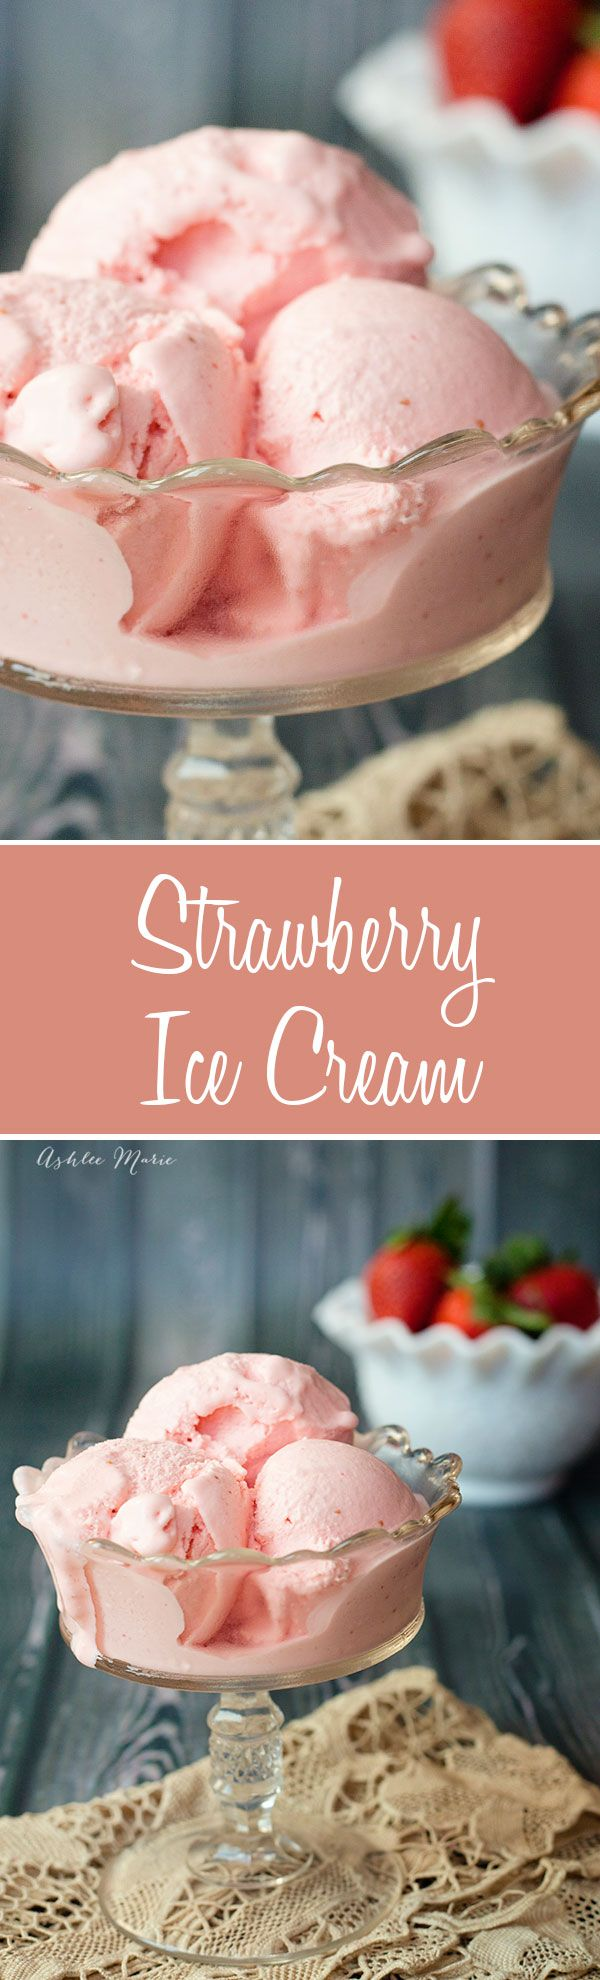 The best strawberry ice cream you will ever have.  Creamy, smooth with AMAZING flavor, everyones favorite recipe (Icecream Recipes Lemon)